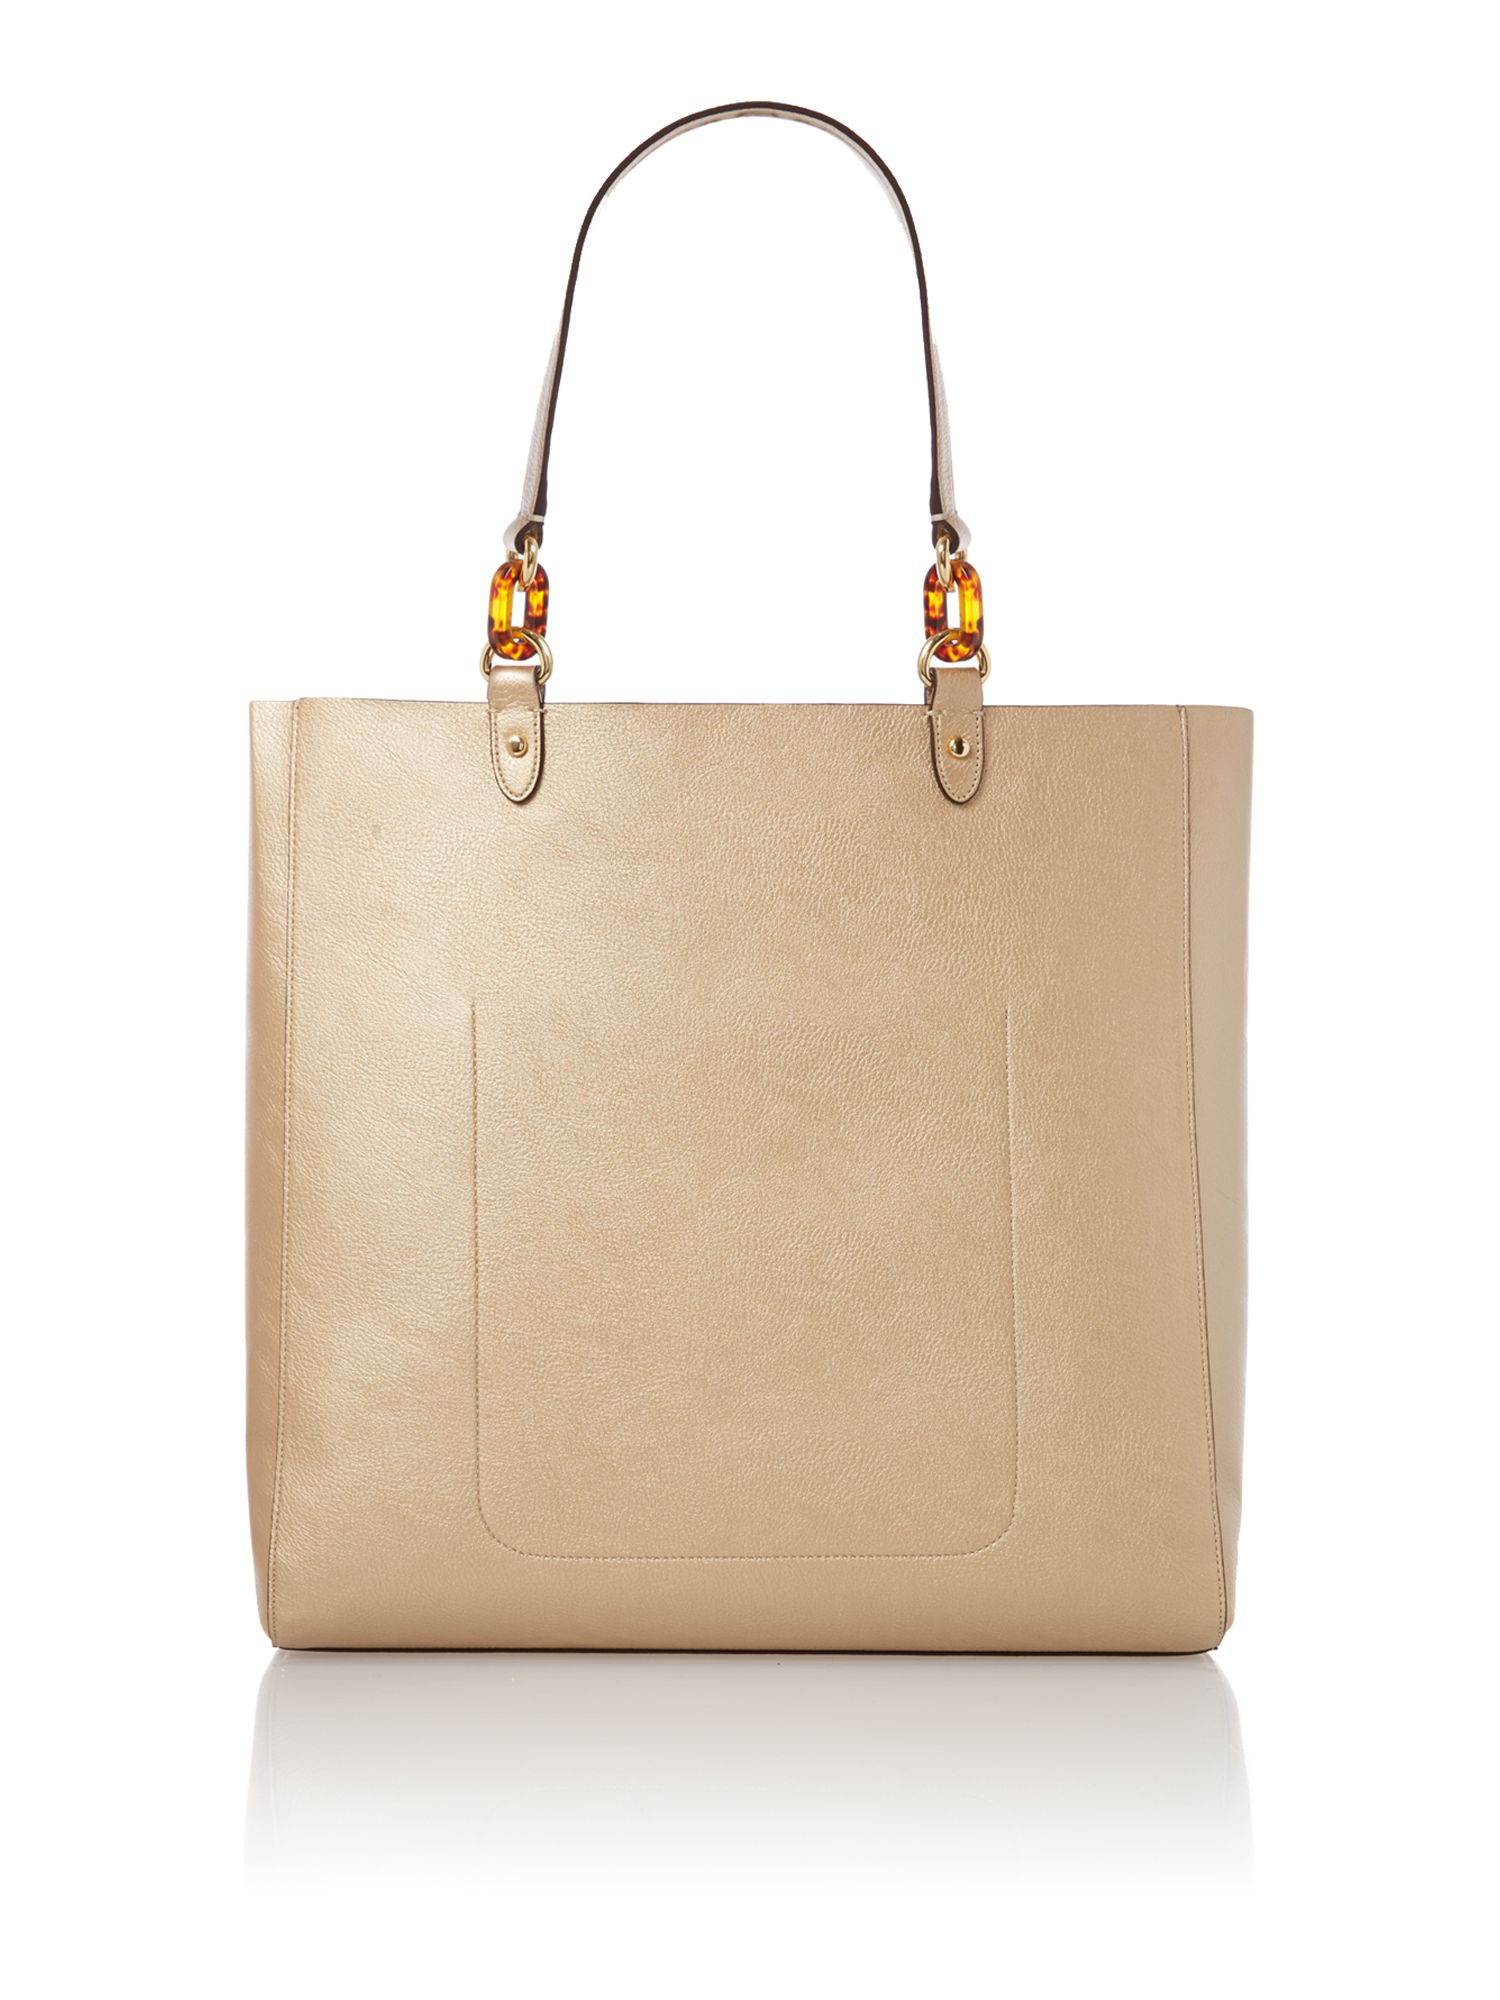 Bembridge gold tote bag